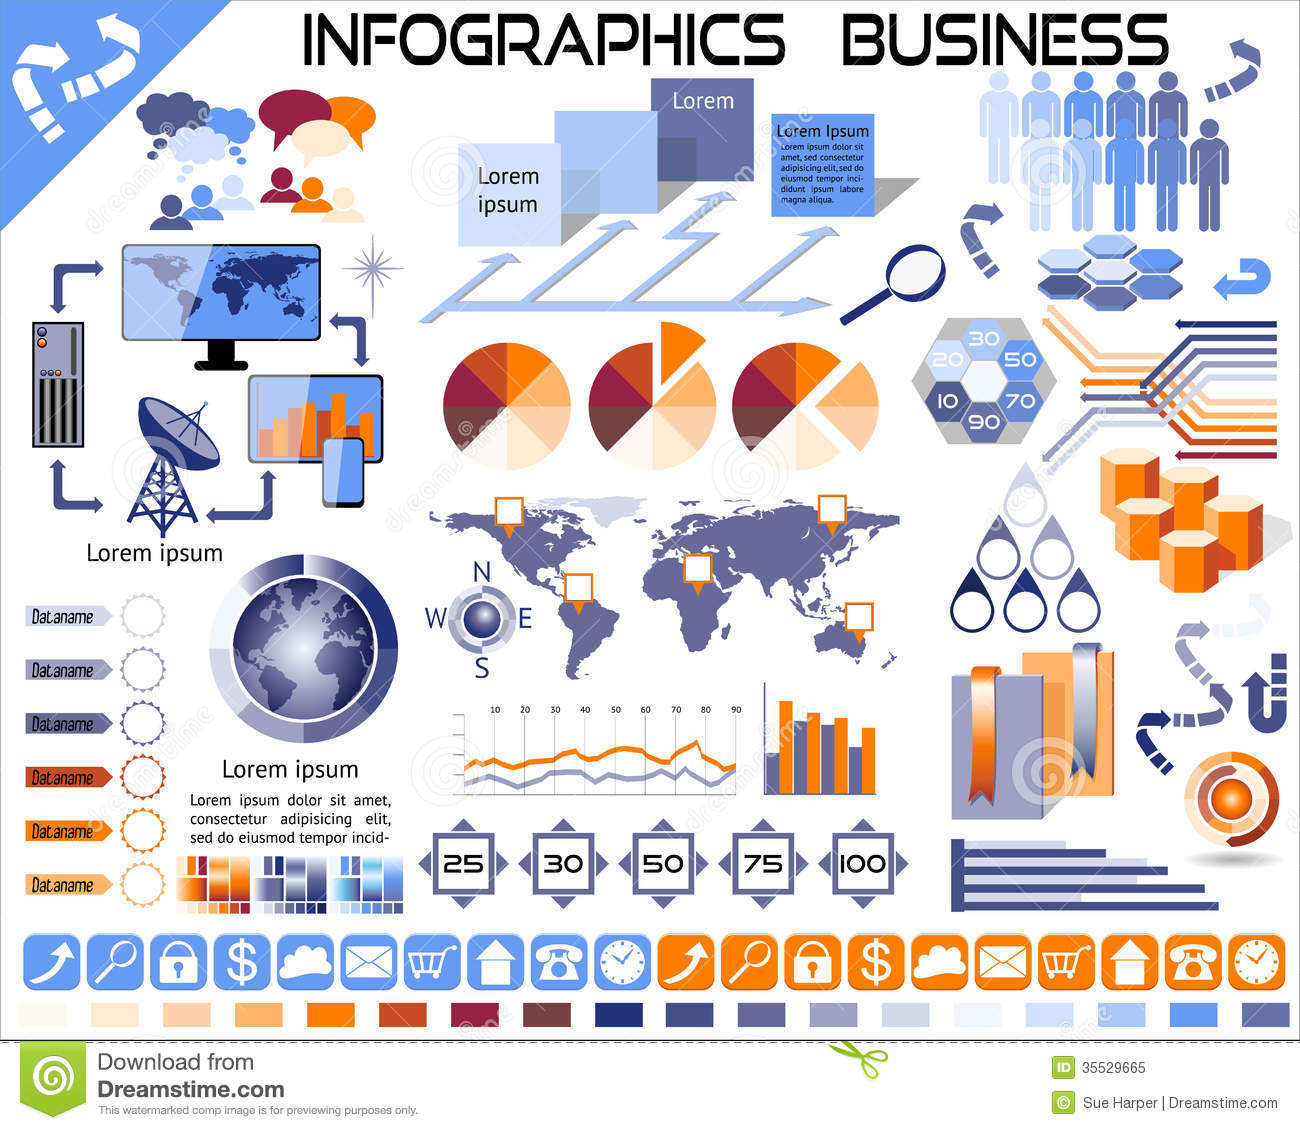 Infographic Business Icons